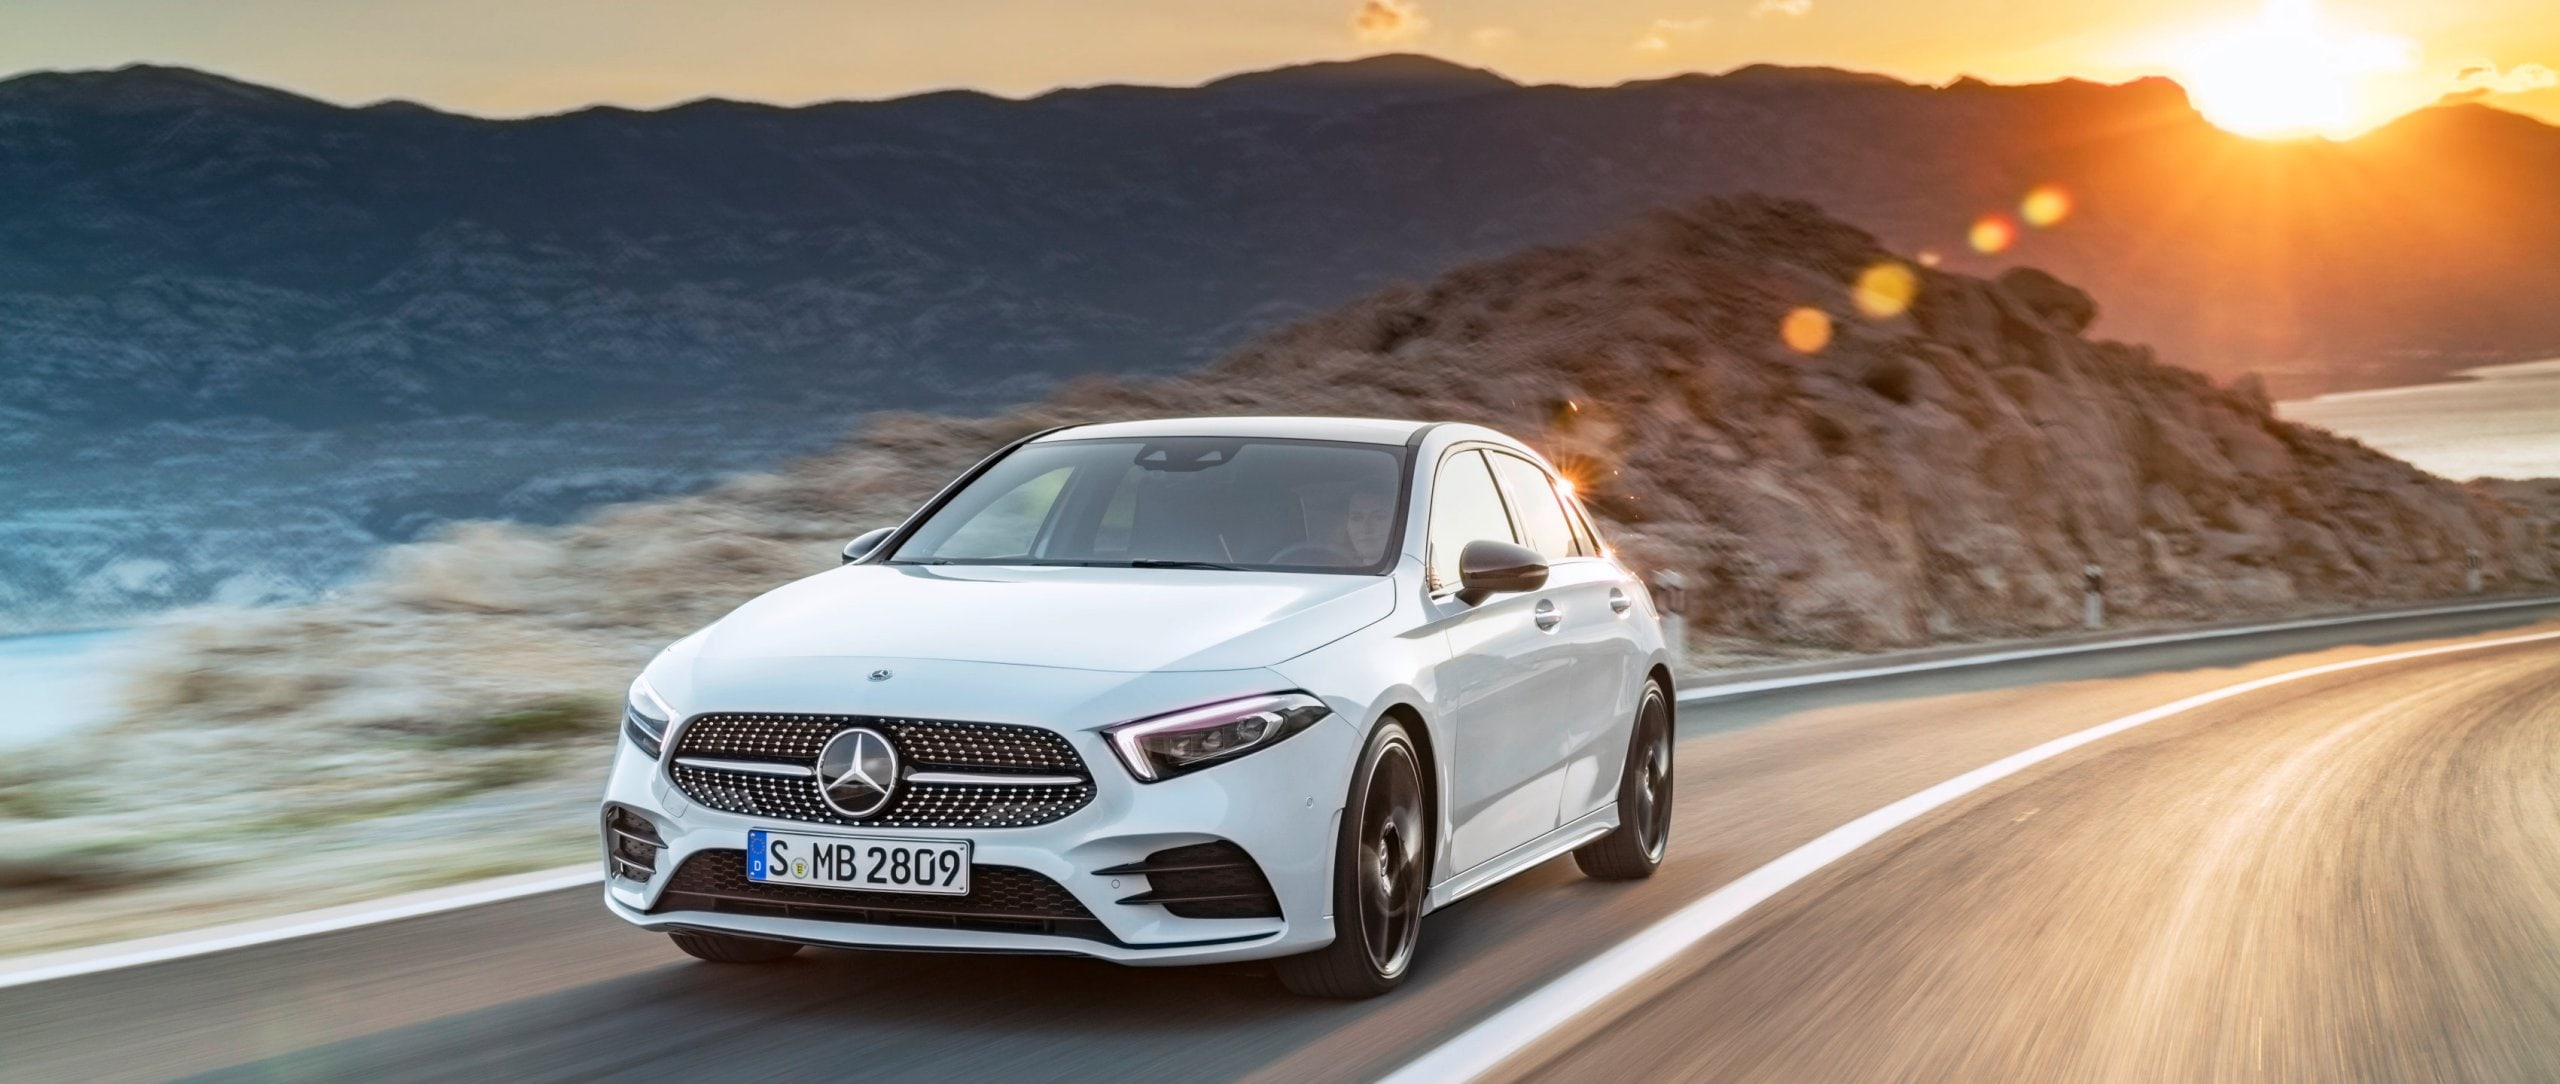 Mercedes Benz A Class 2018 The Features In Video